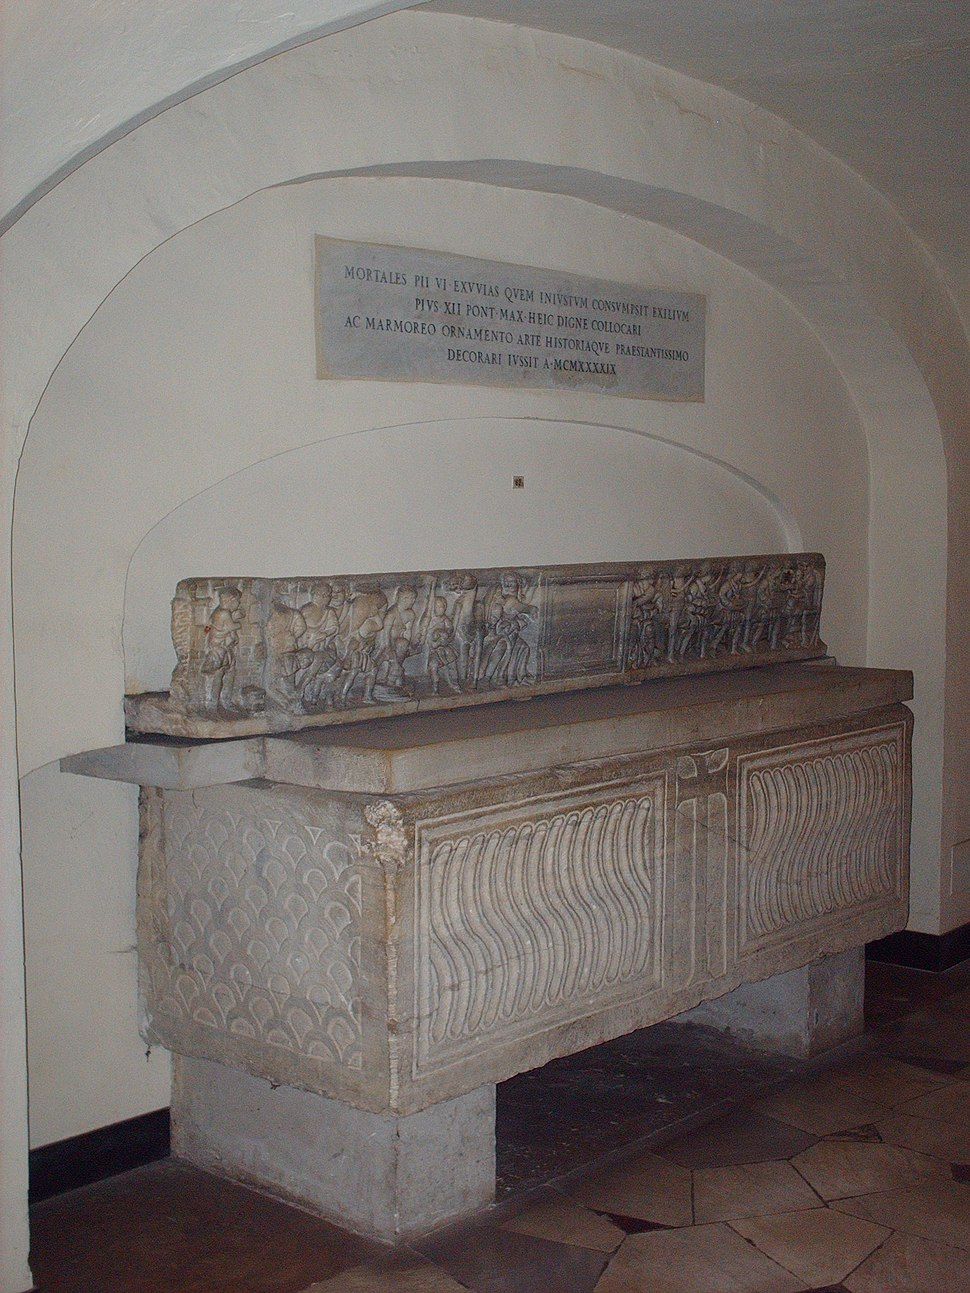 Tomb of Pius VI